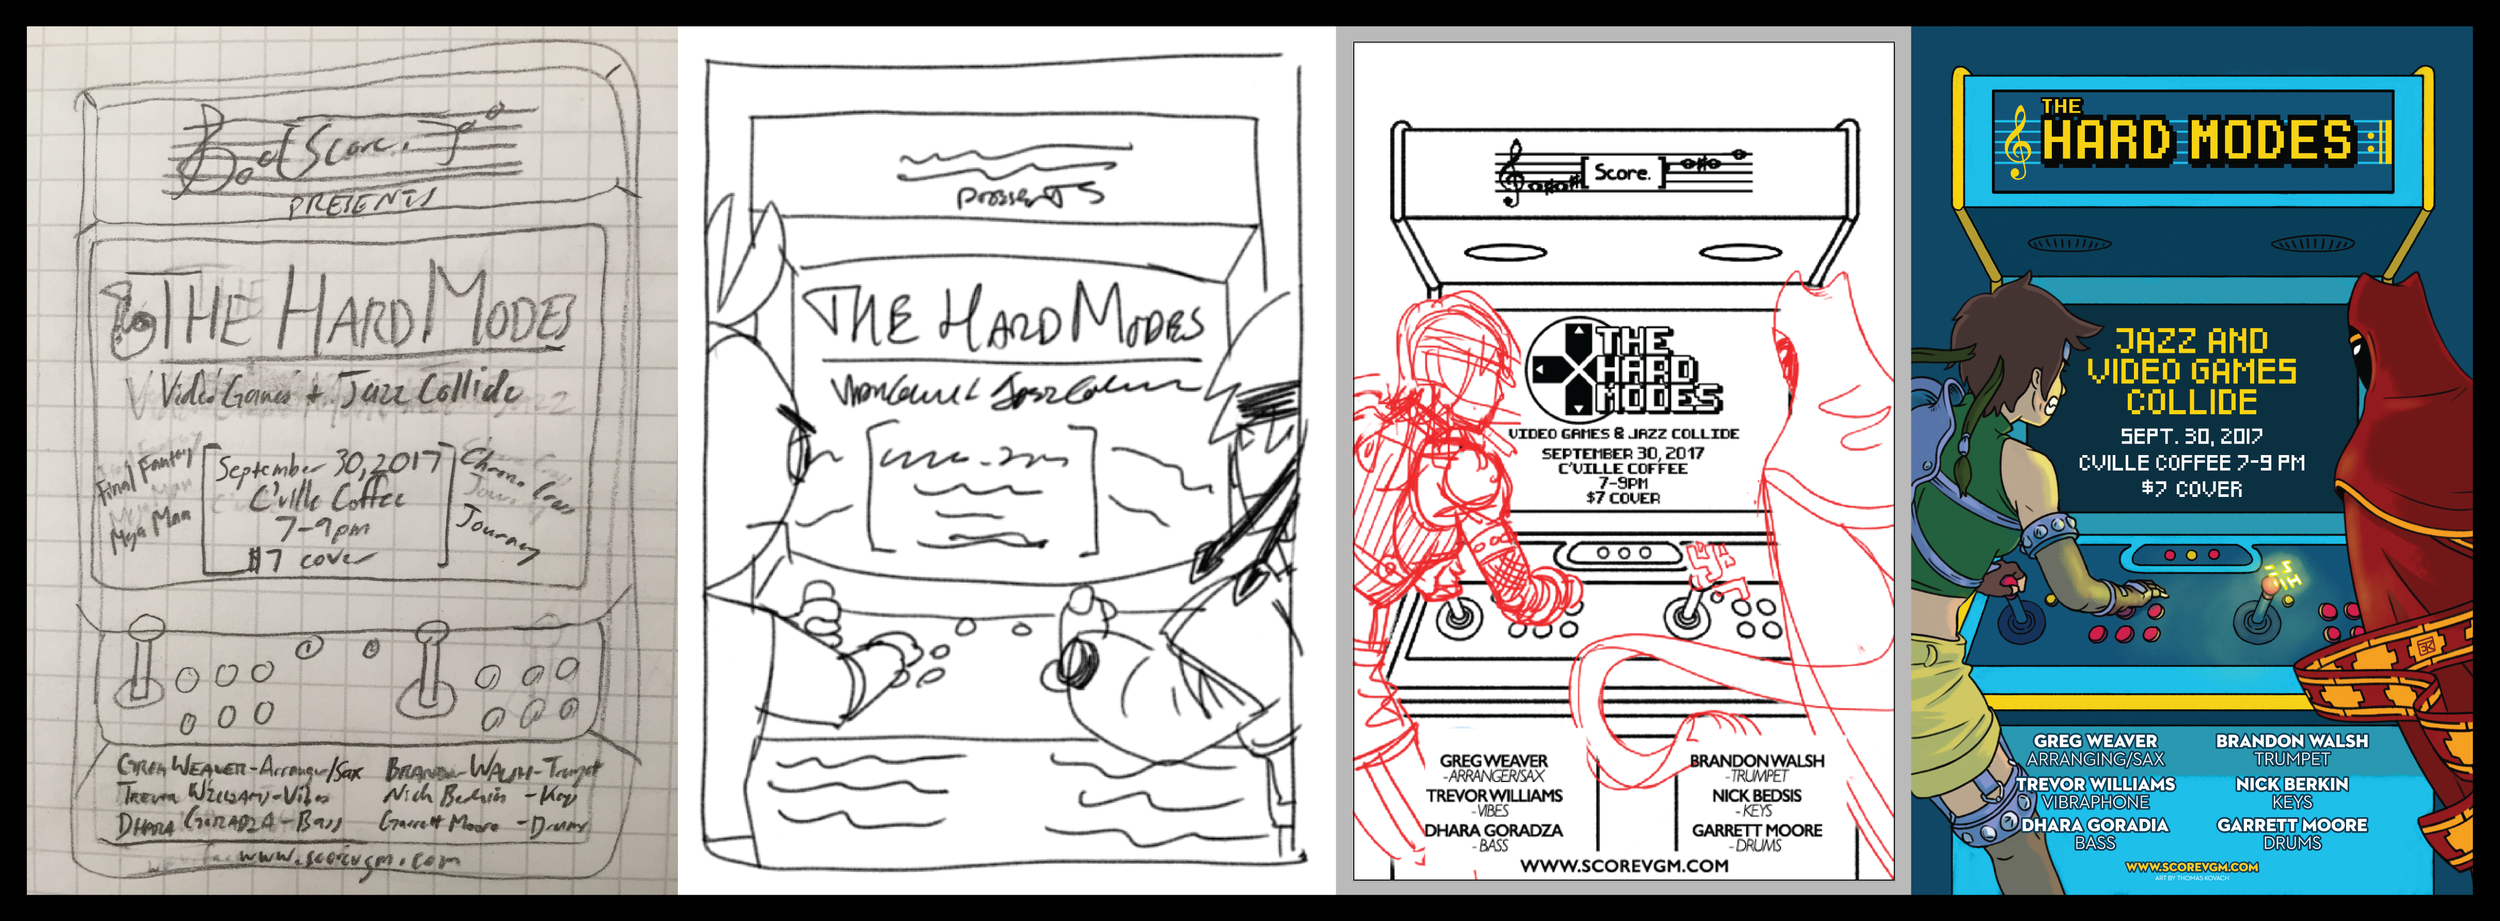 (1) Concept; (2) Initial sketch; (3) Conceptual draft; (4) Final product.